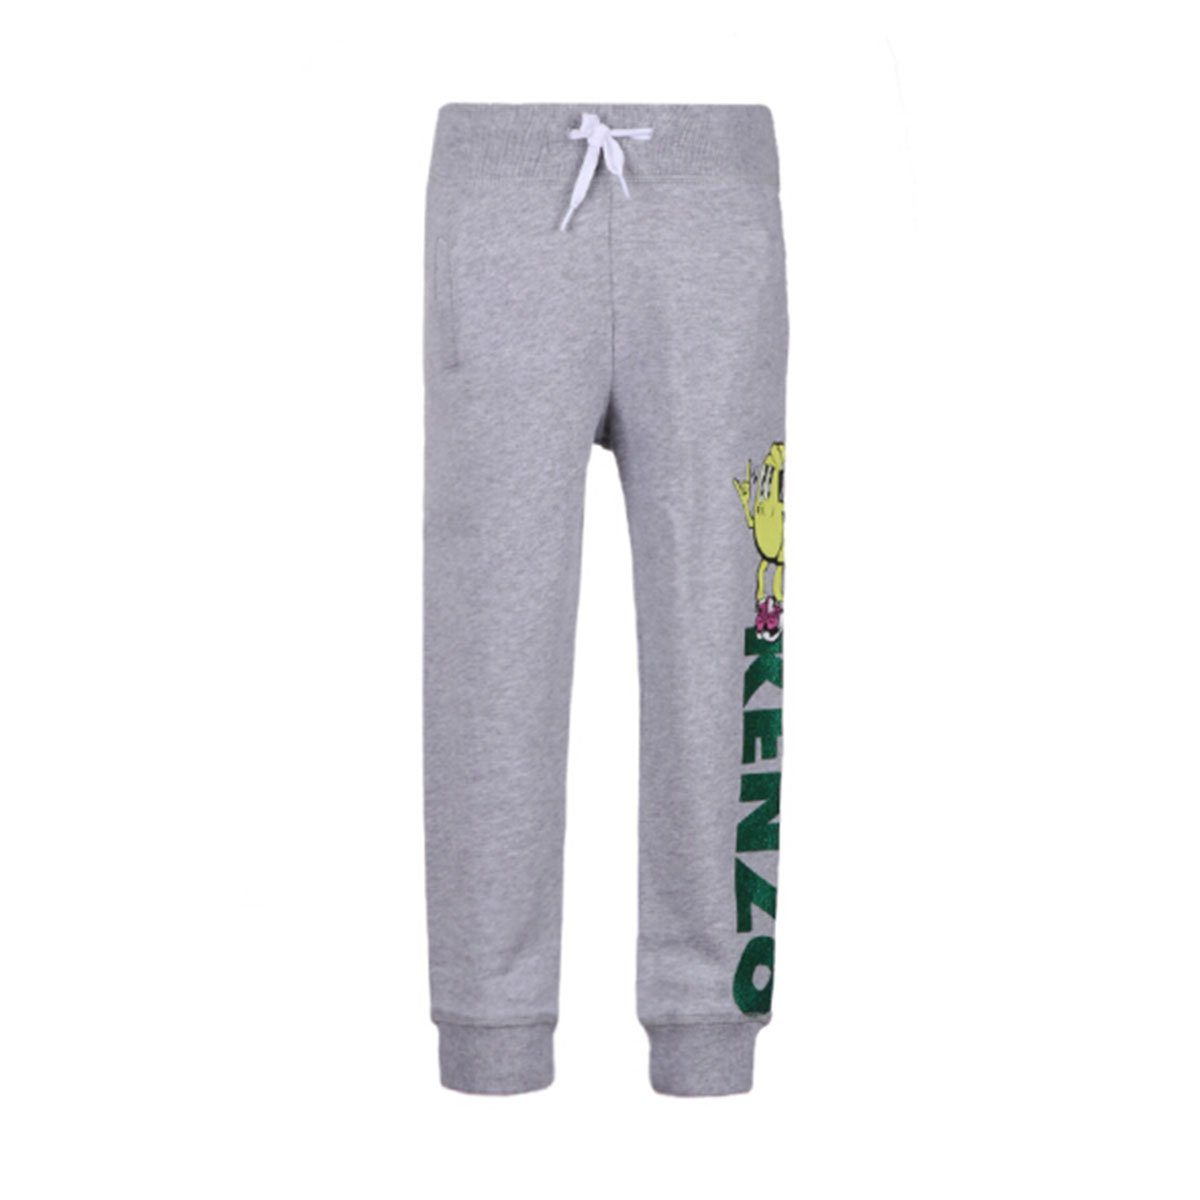 043153bccd0f Kenzo - Delia Trousers For Girls